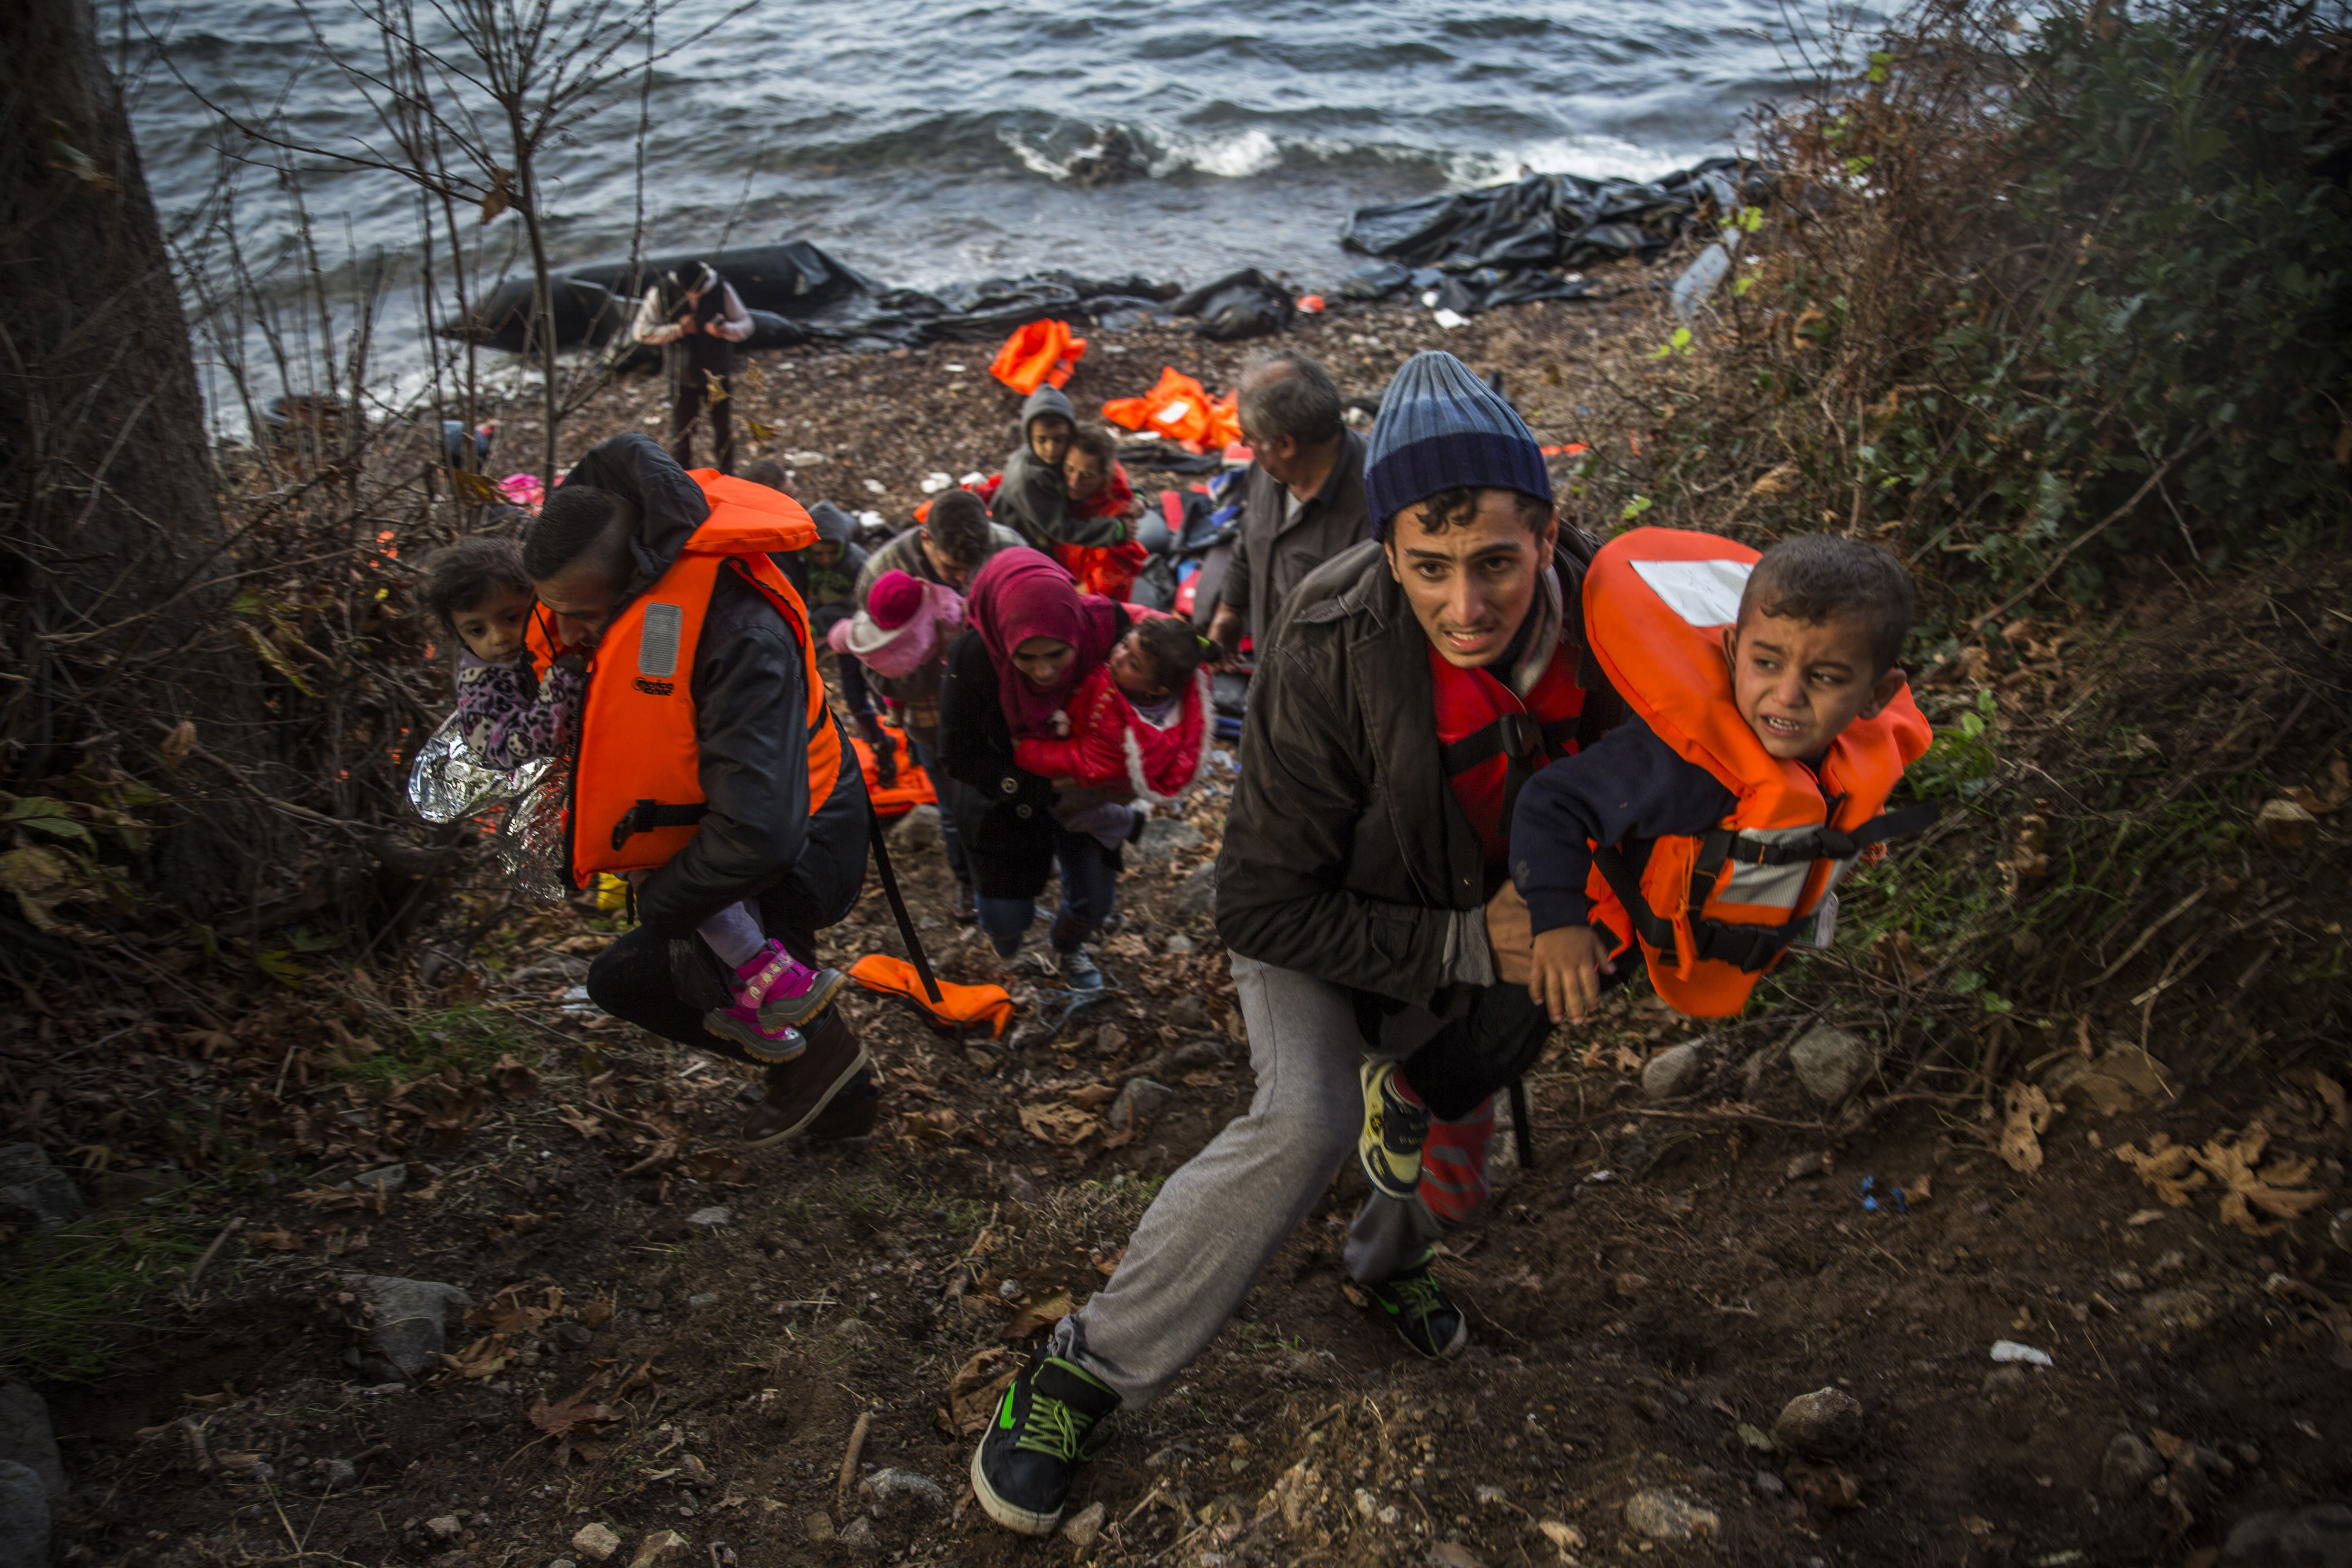 Photo: Syrian refugee family comes ashore